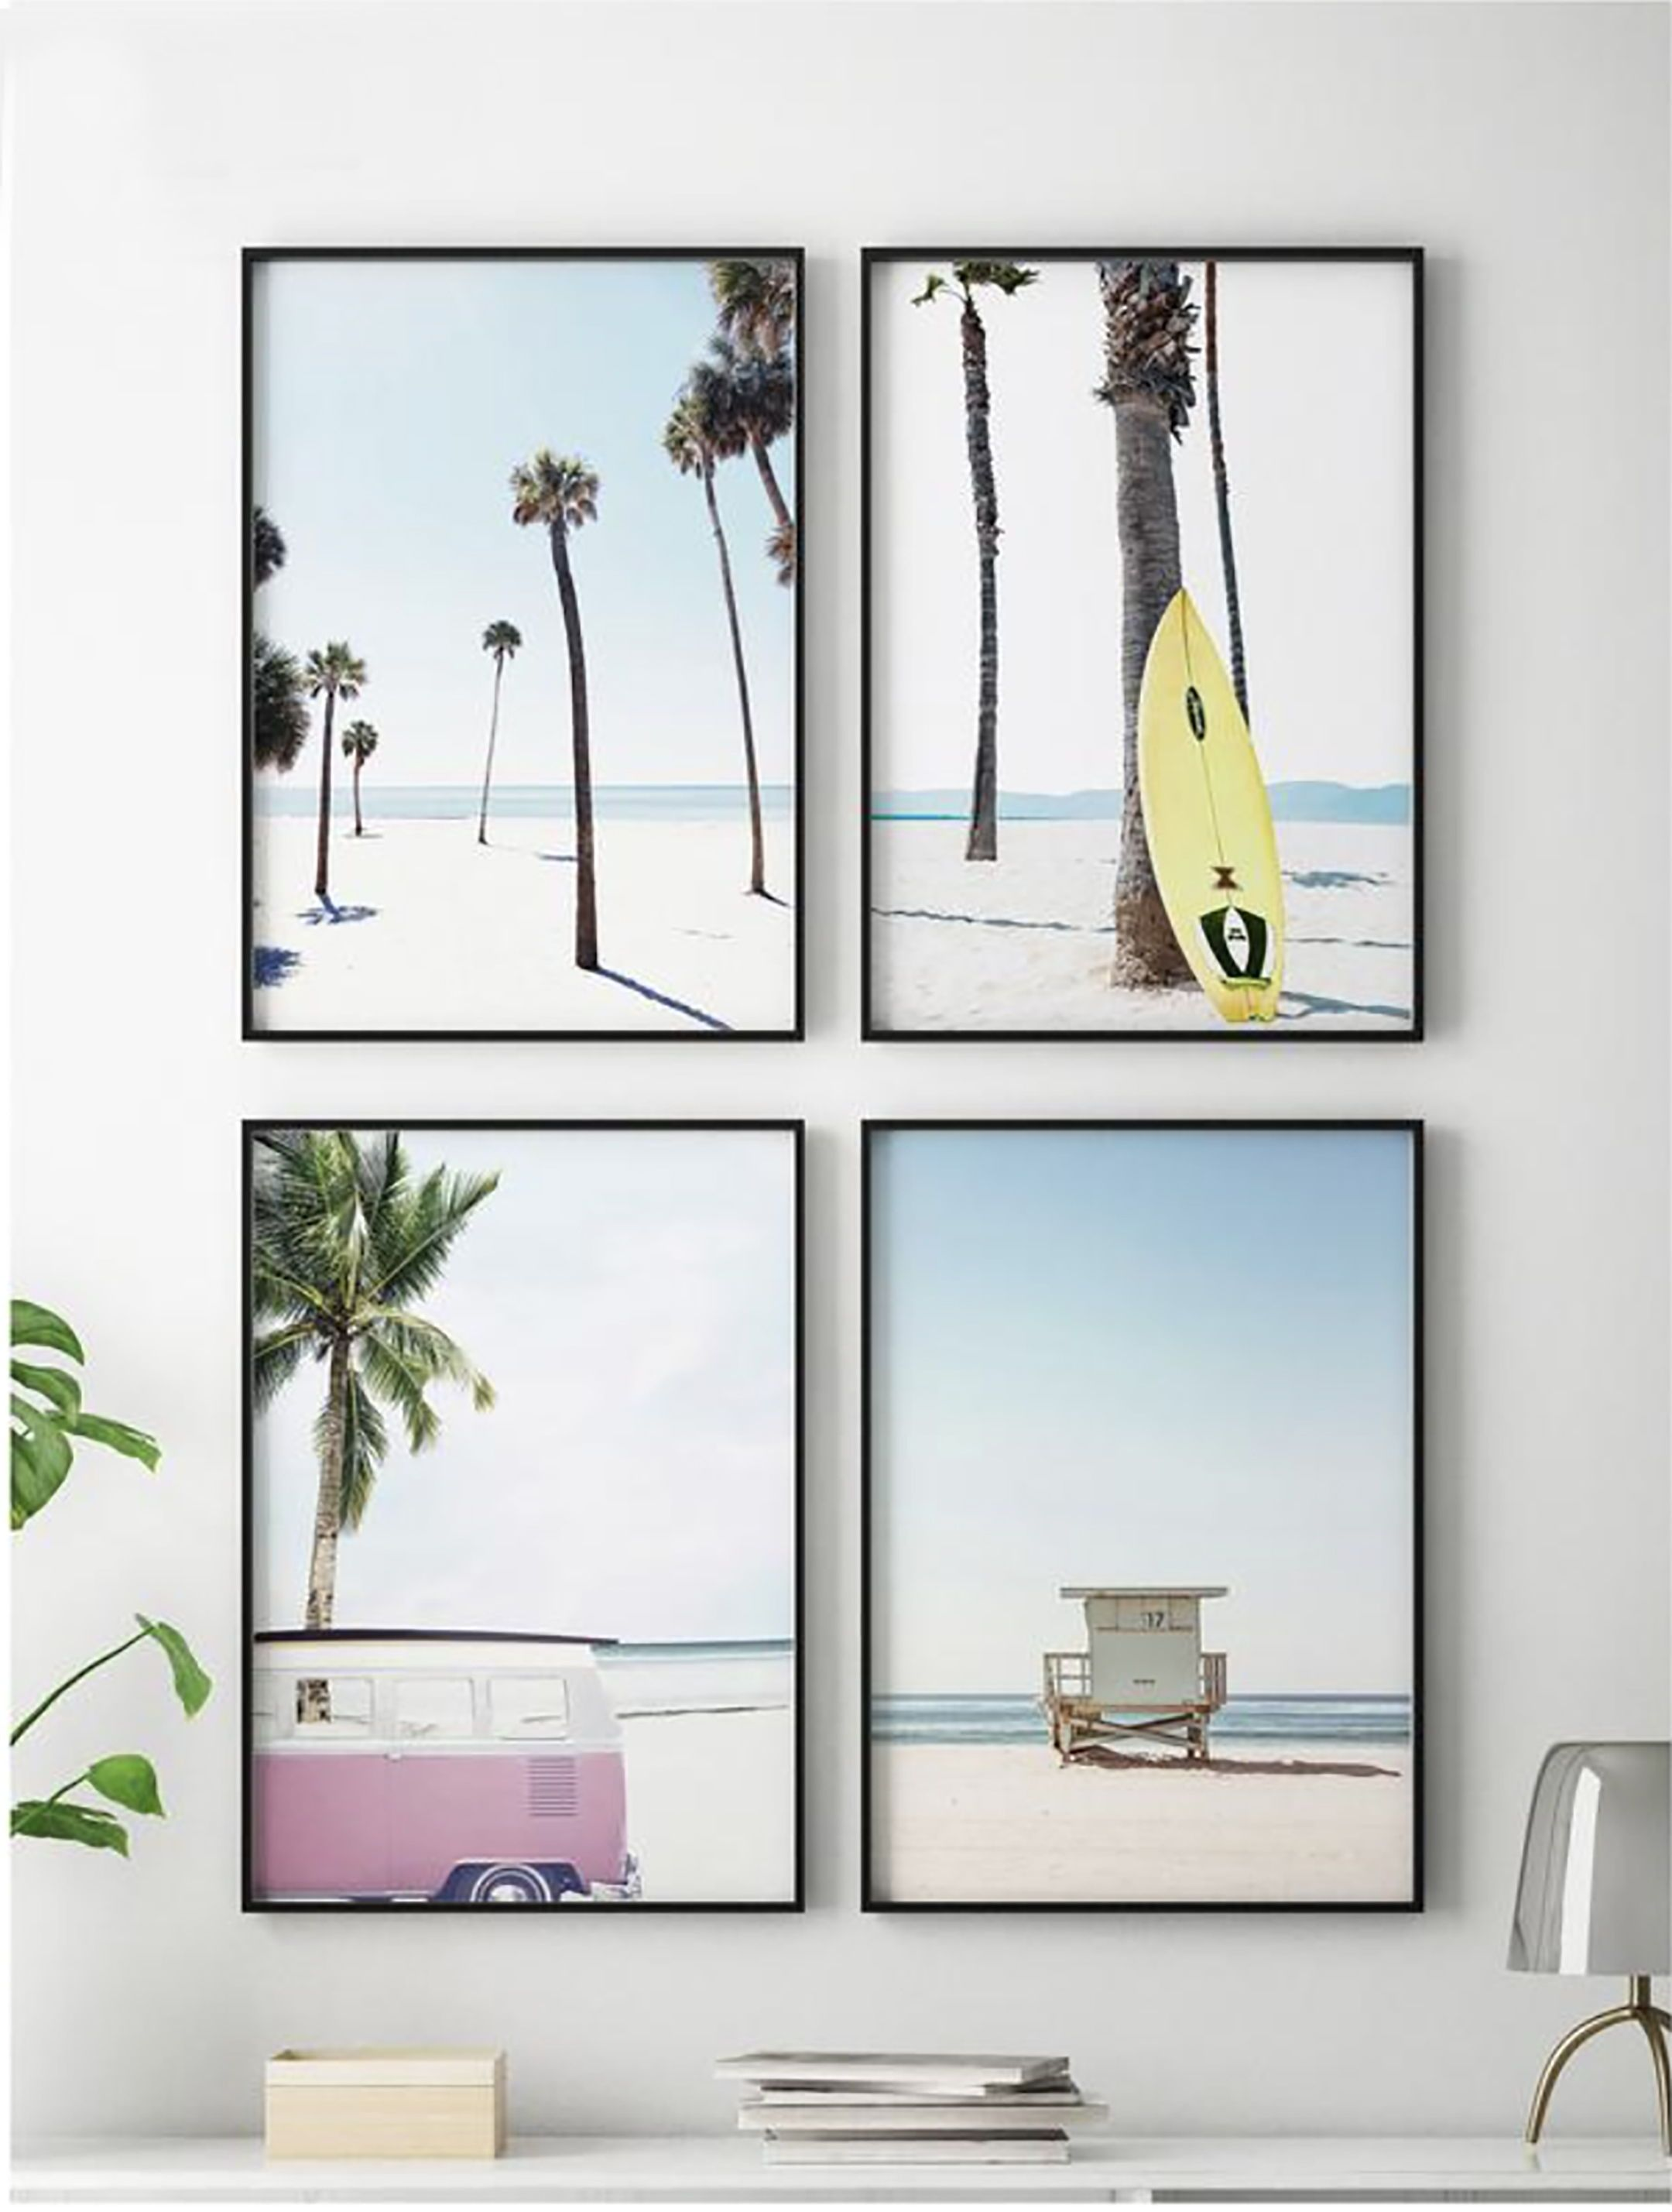 Beach Set Prints Digital Coastal Set of Four Prints Surf Decor Pink Van Print Art California Gallery Wall Set Travel Art Posters #213 #decorateshop